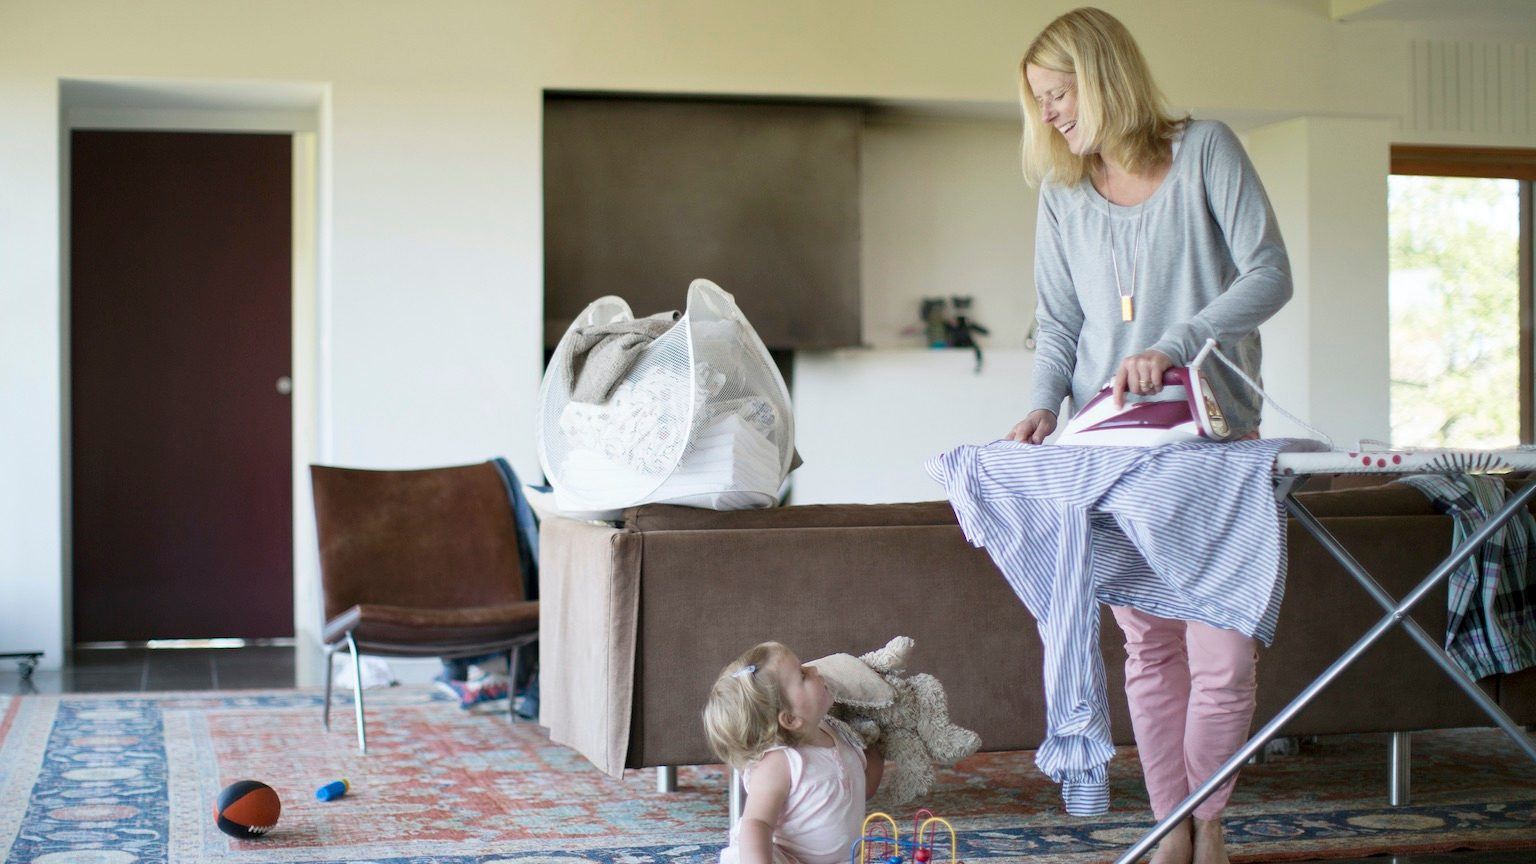 Mother ironing laughing at toddler (18-24 months) on floor